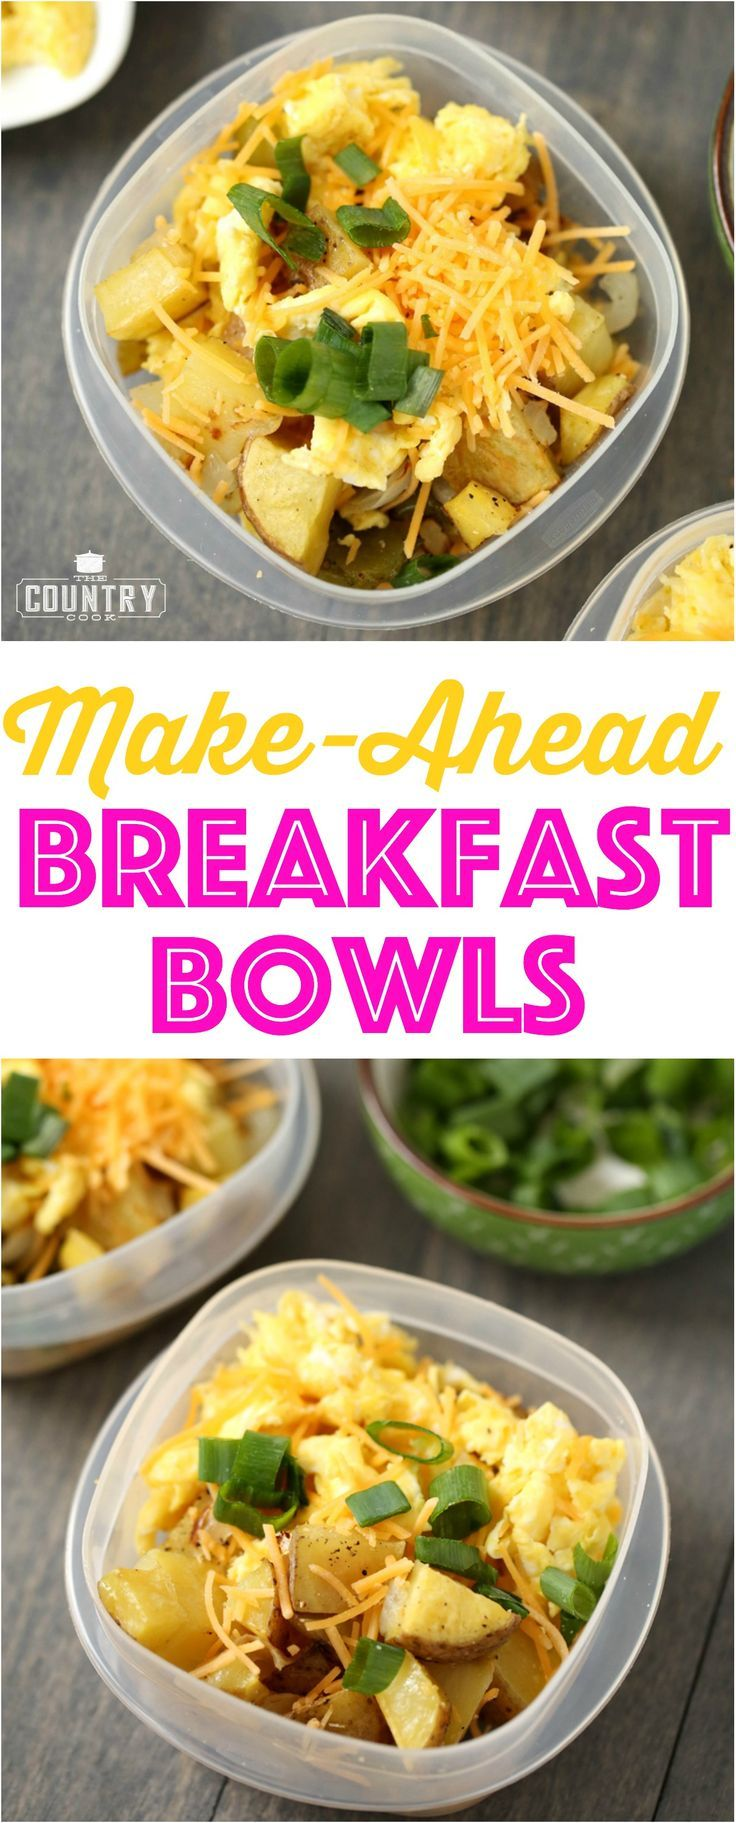 Make-Ahead Breakfast Bowls recipe from The Country Cook and /egglandsbest/. Easy, protein-filled and filling!